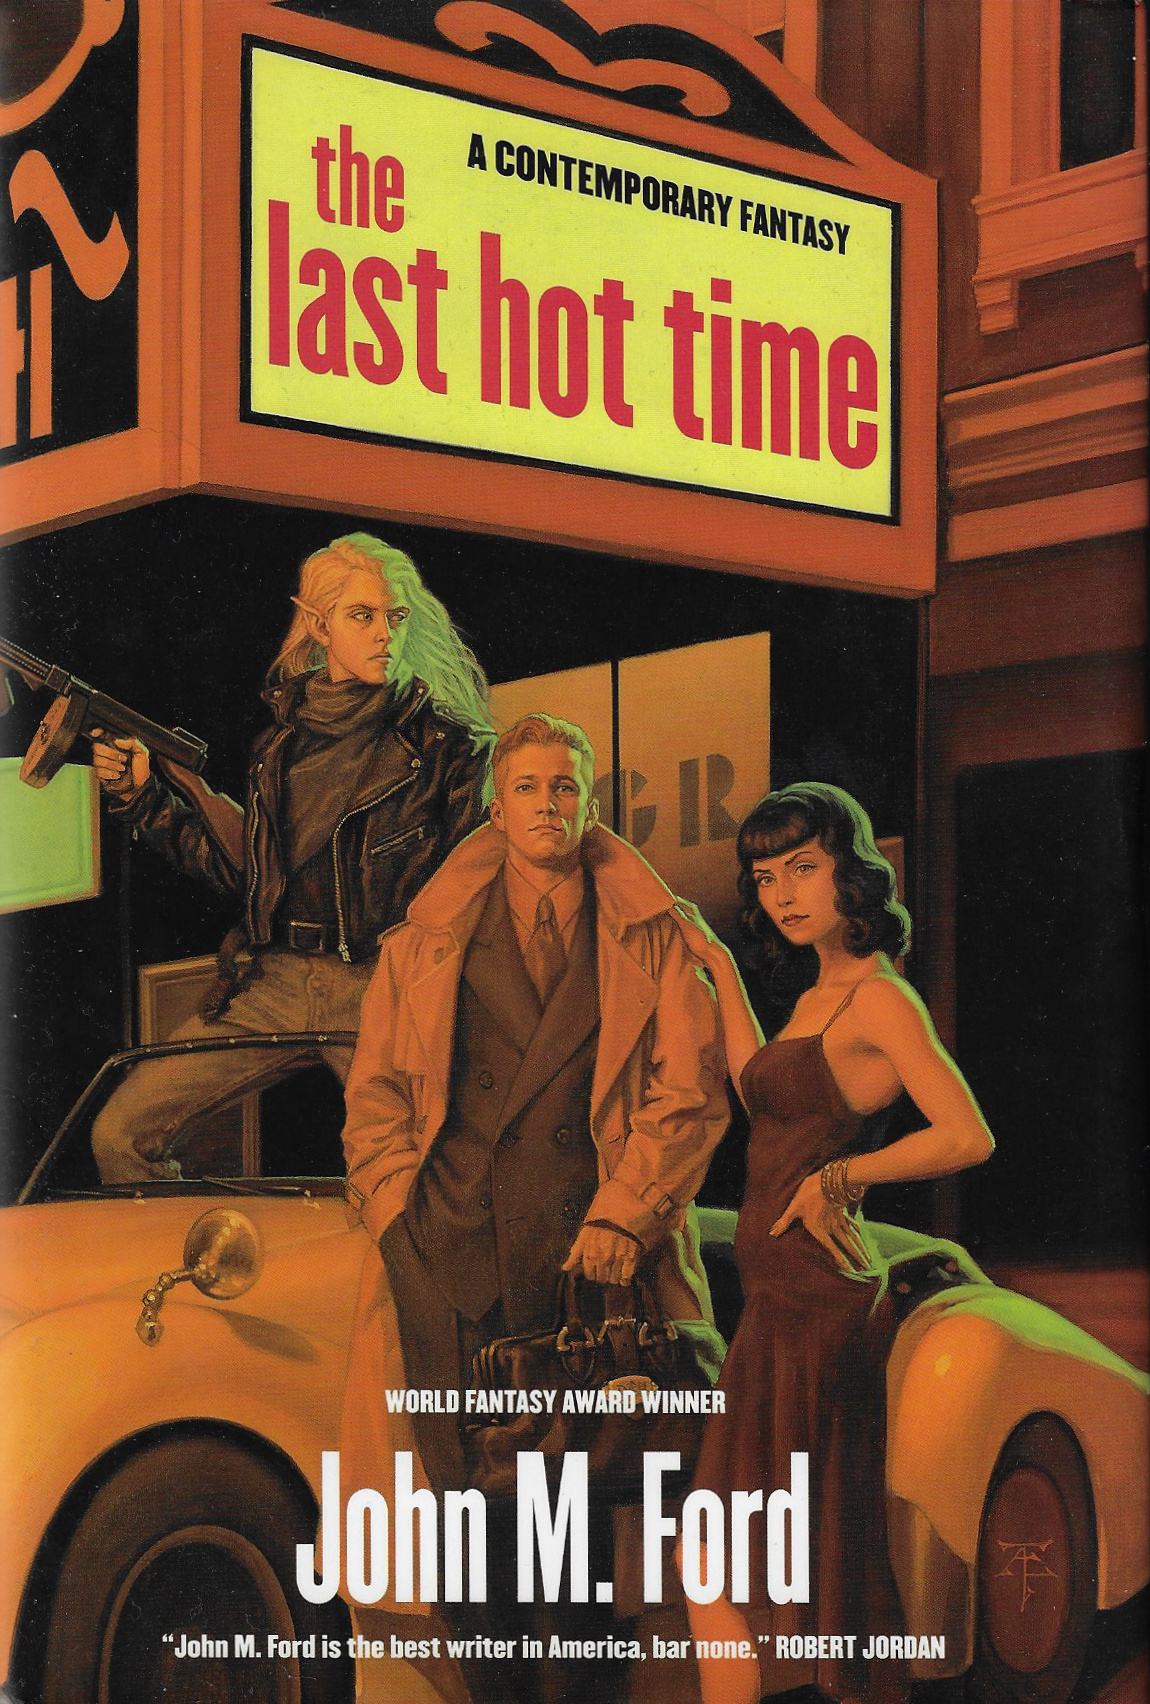 The Last Hot Time  By John M. Ford (2000)